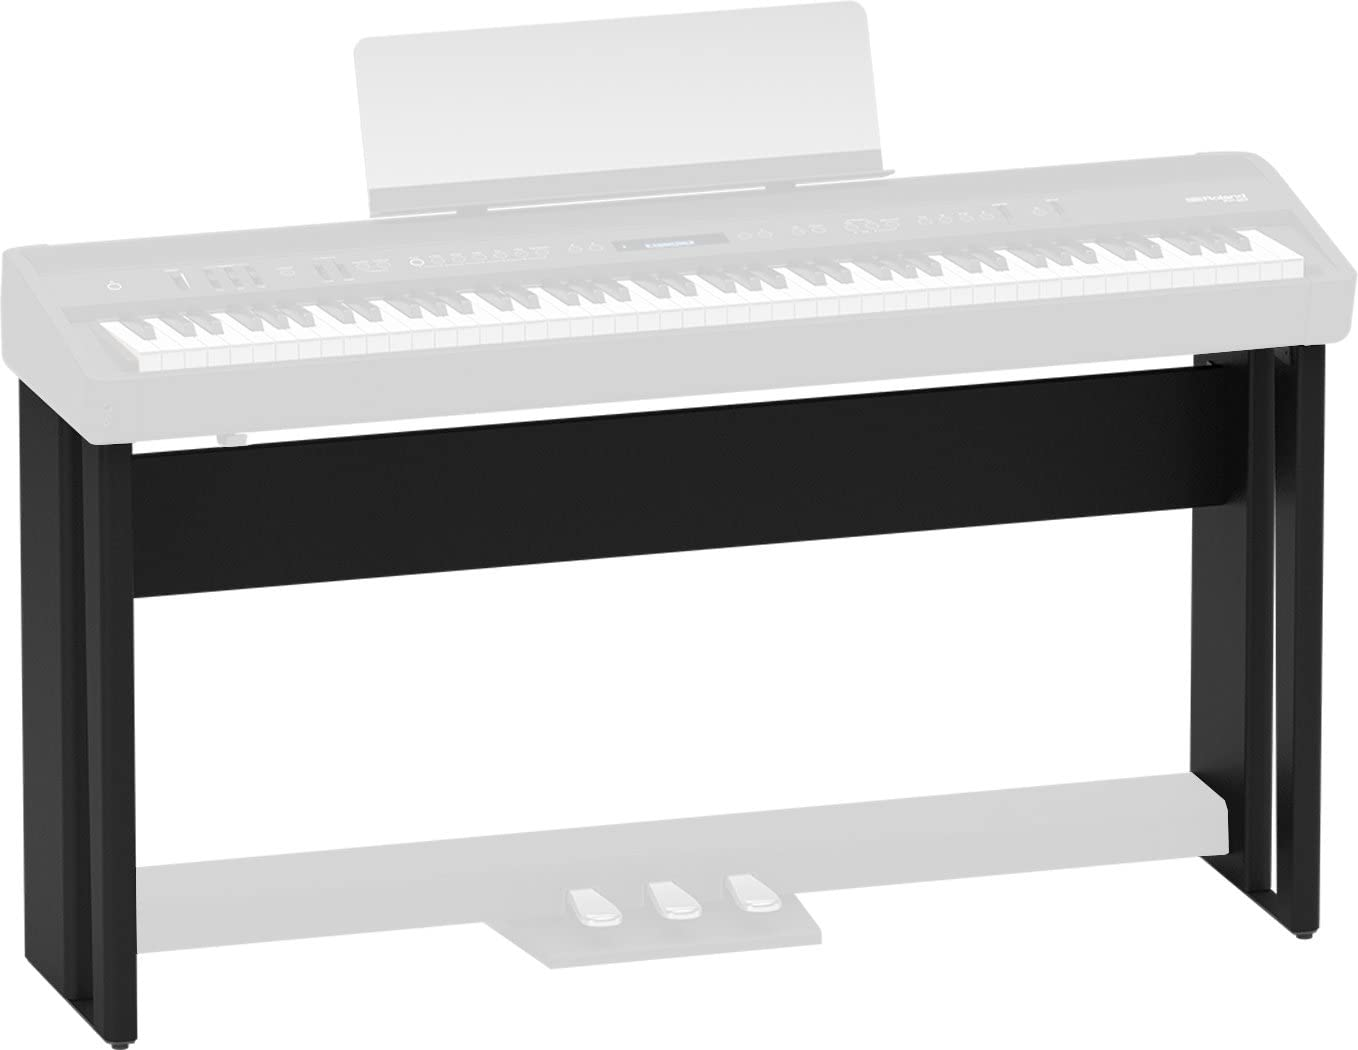 Roland Ranking Tampa Mall TOP8 KSC-90 Electronic Keyboard Black for Stand FP-90